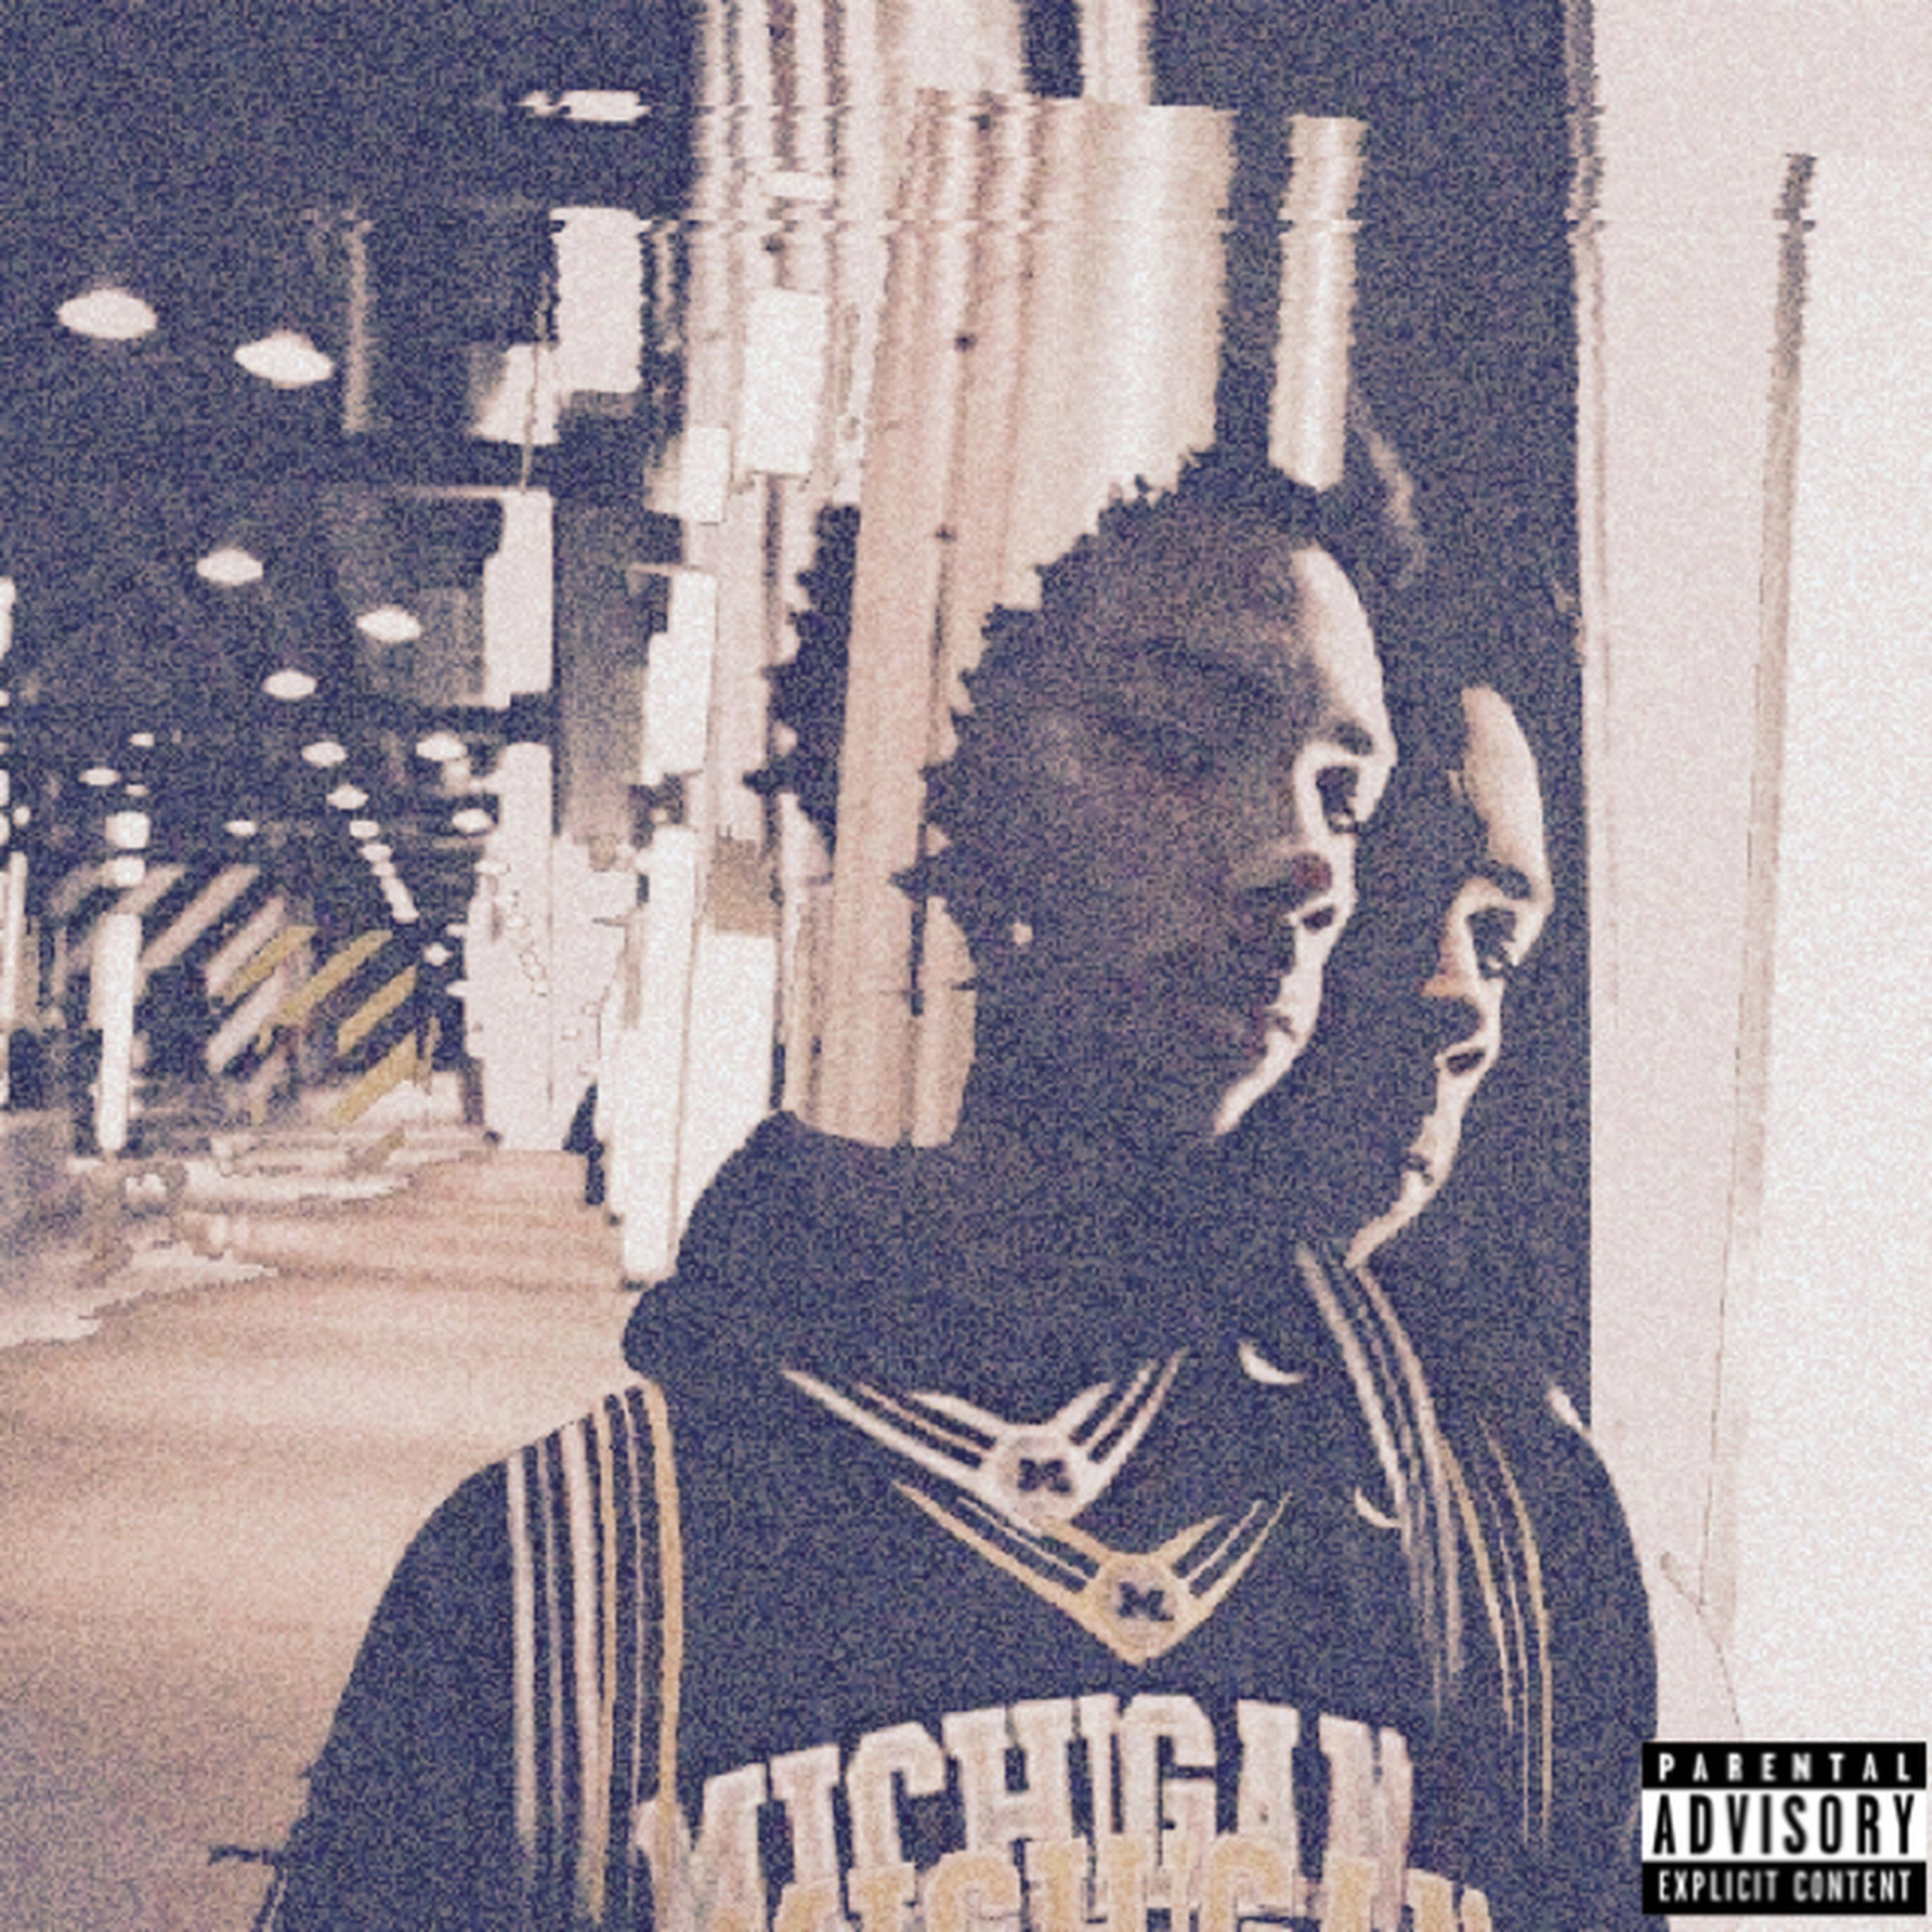 Buzzing Arizona Rapper, Hotelroom Delivers His Scathing New EP